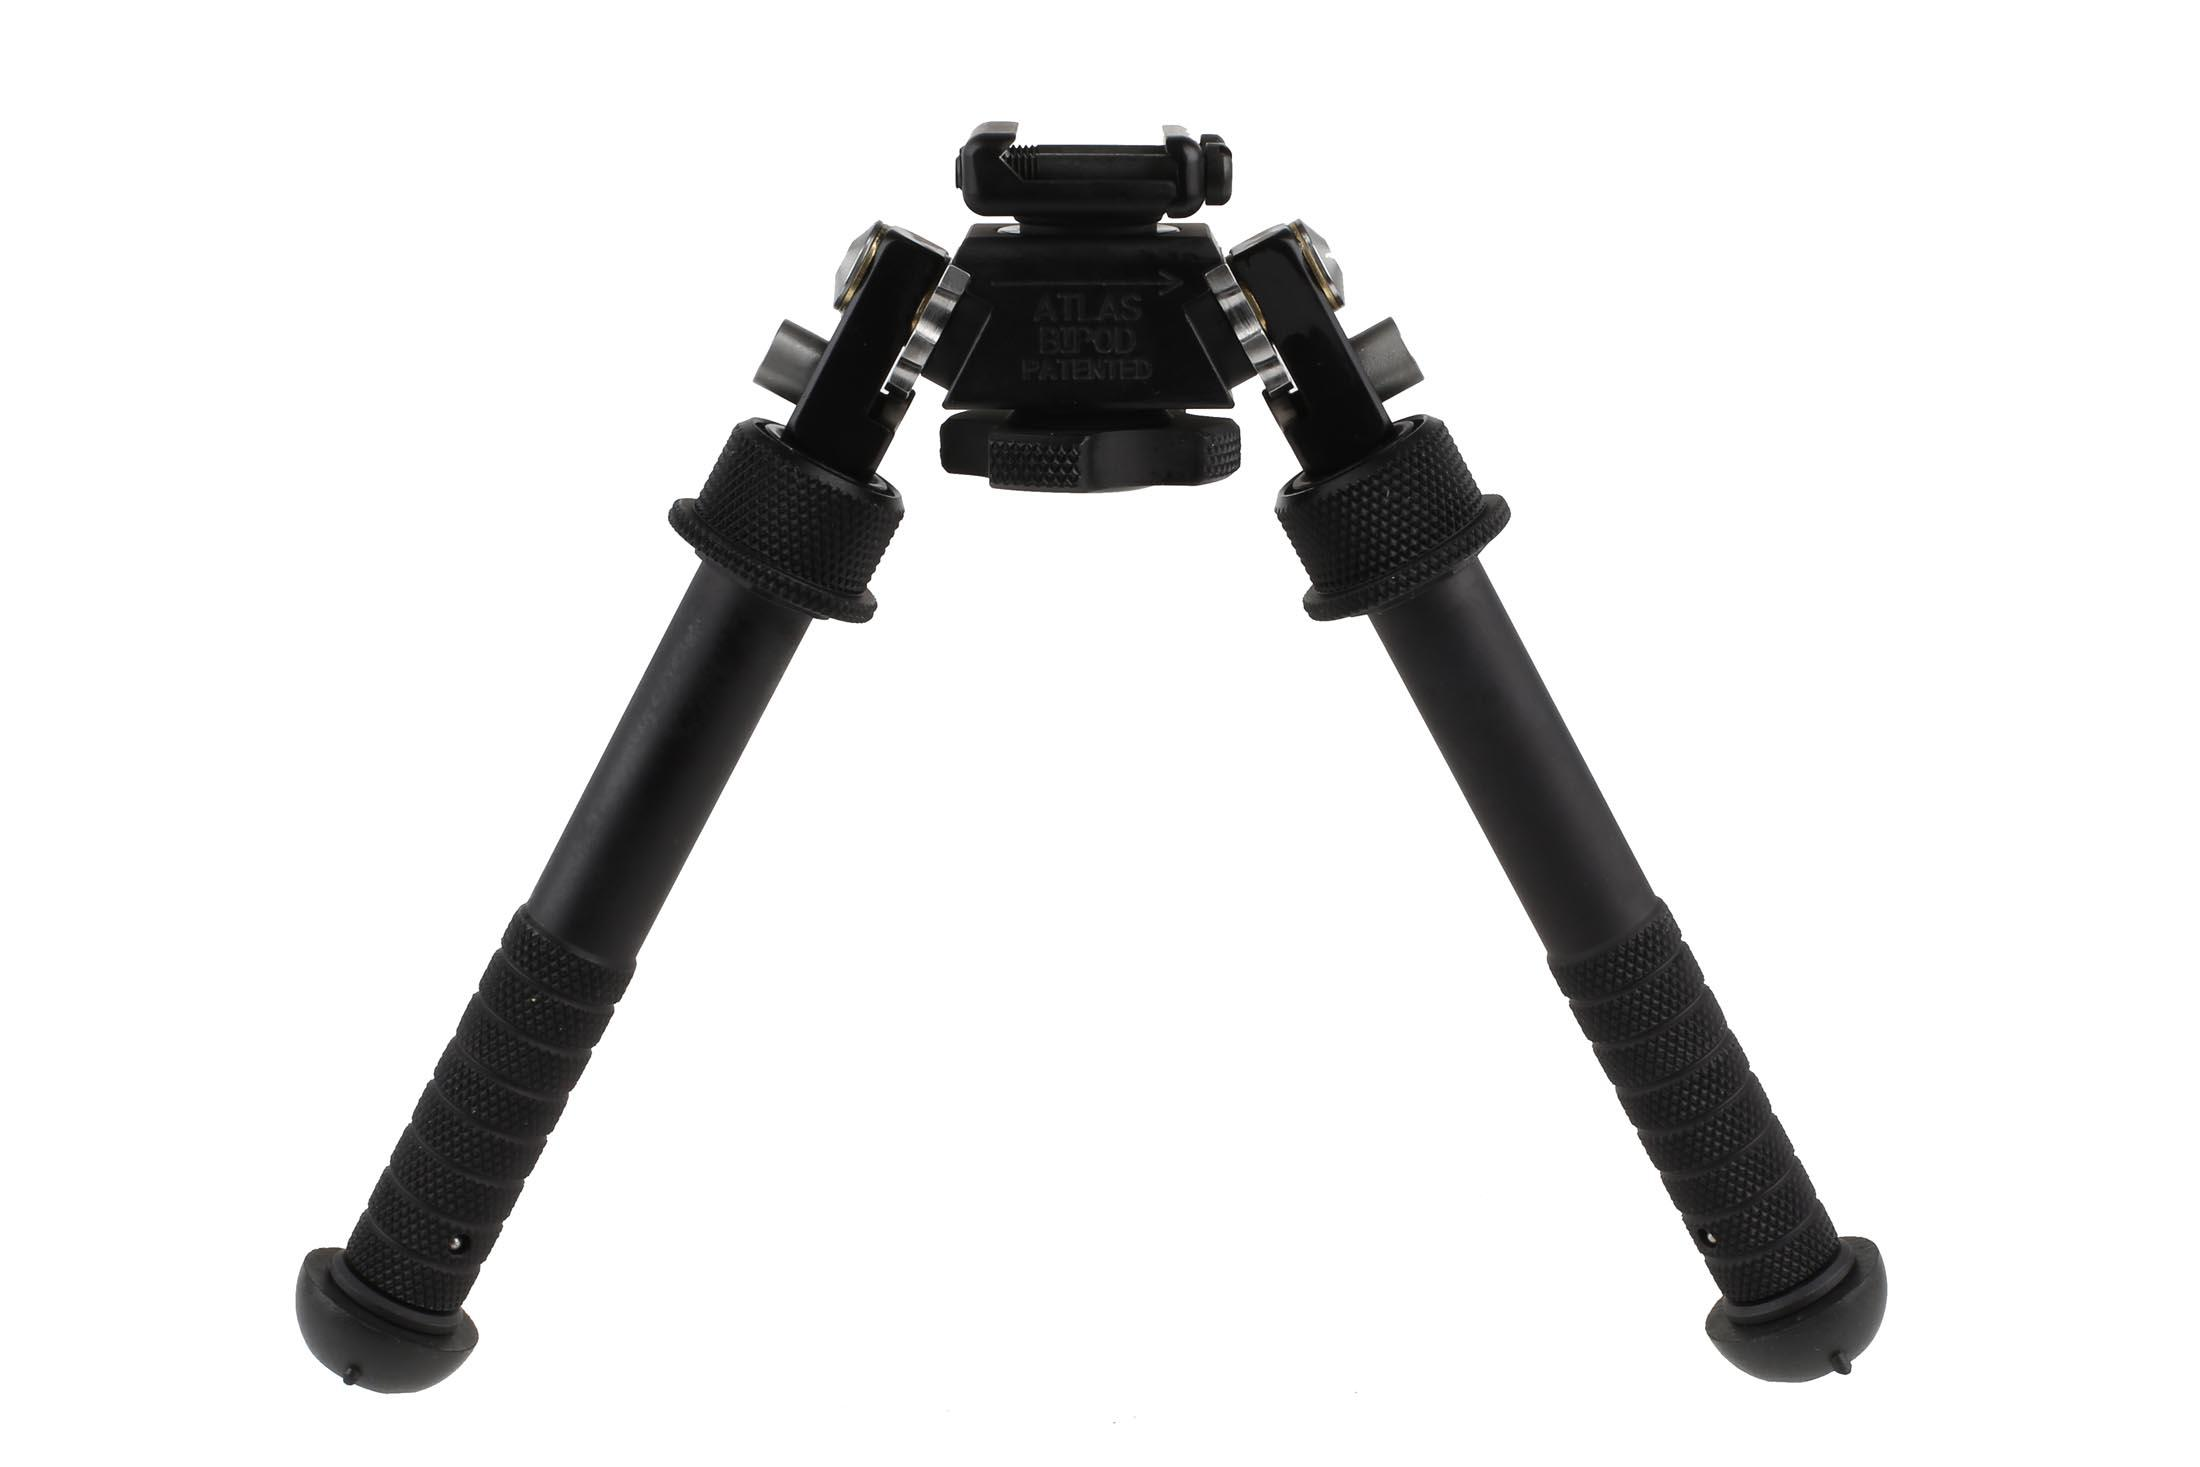 Atlas Precision Bipod w/ Rail Clamp, BT10